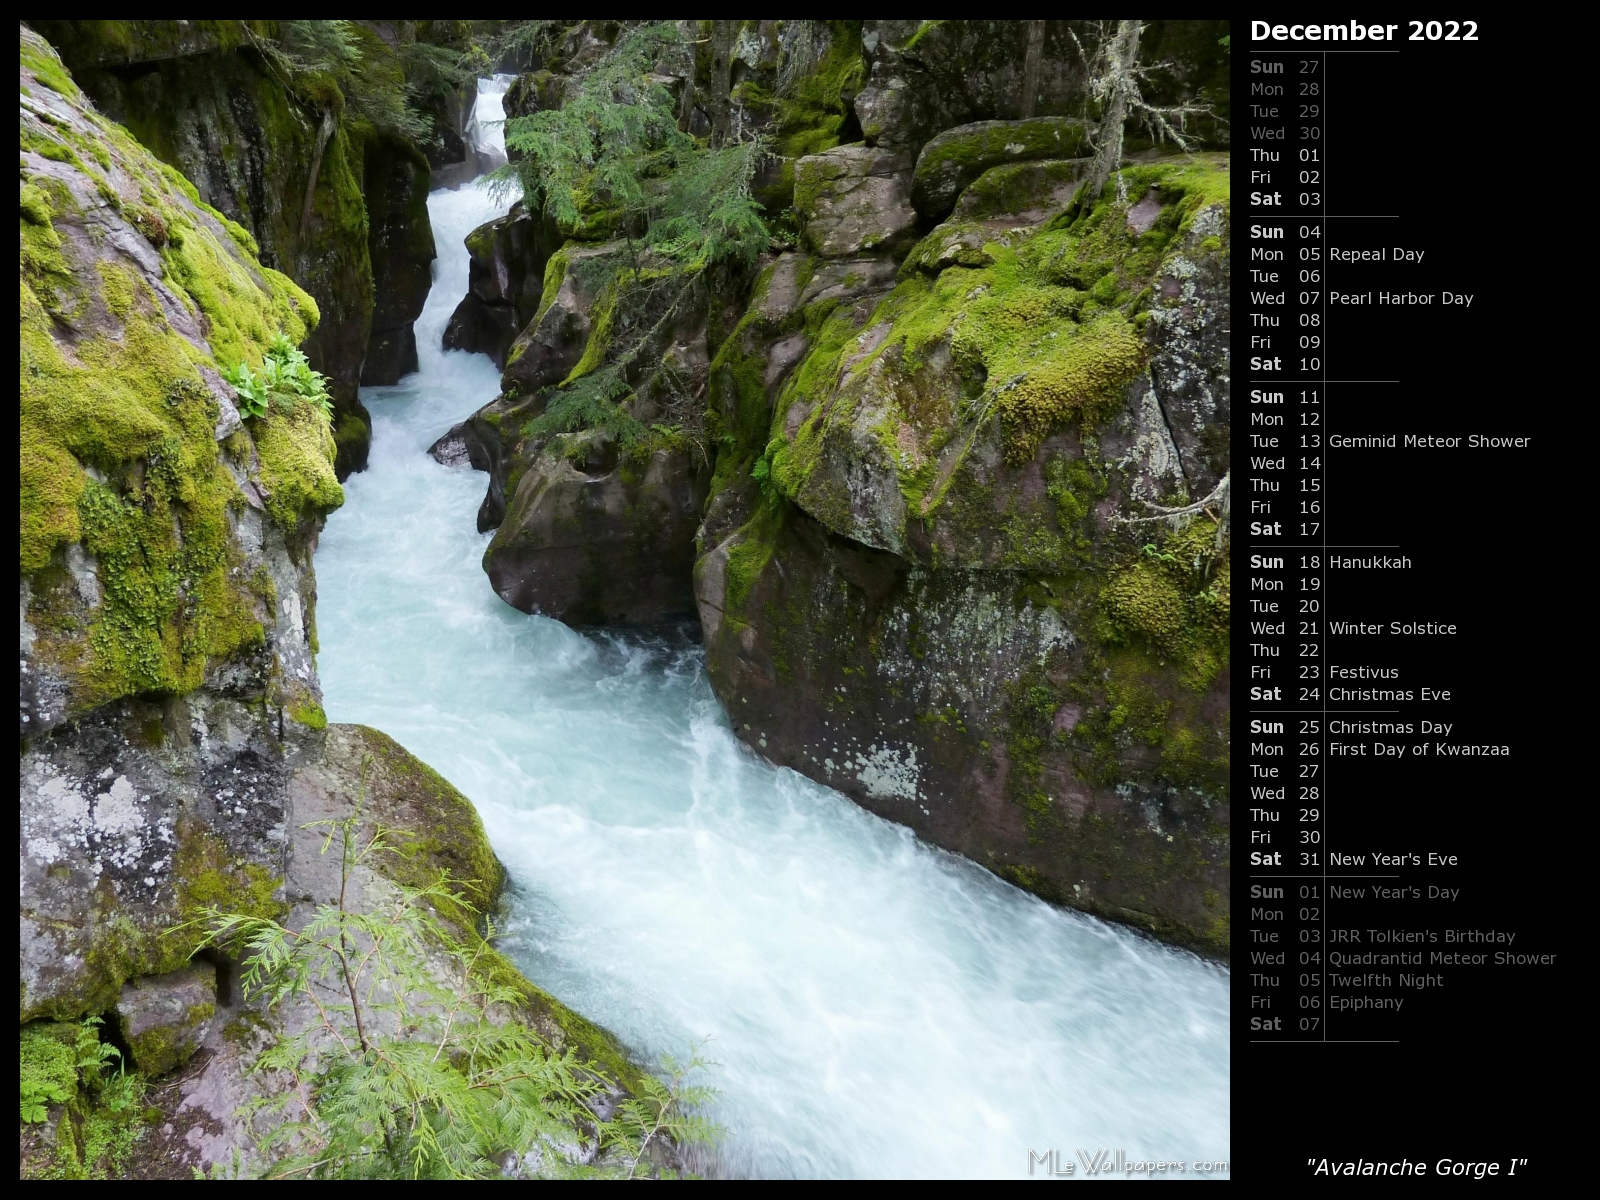 mlewallpapers - avalanche gorge i (calendar)